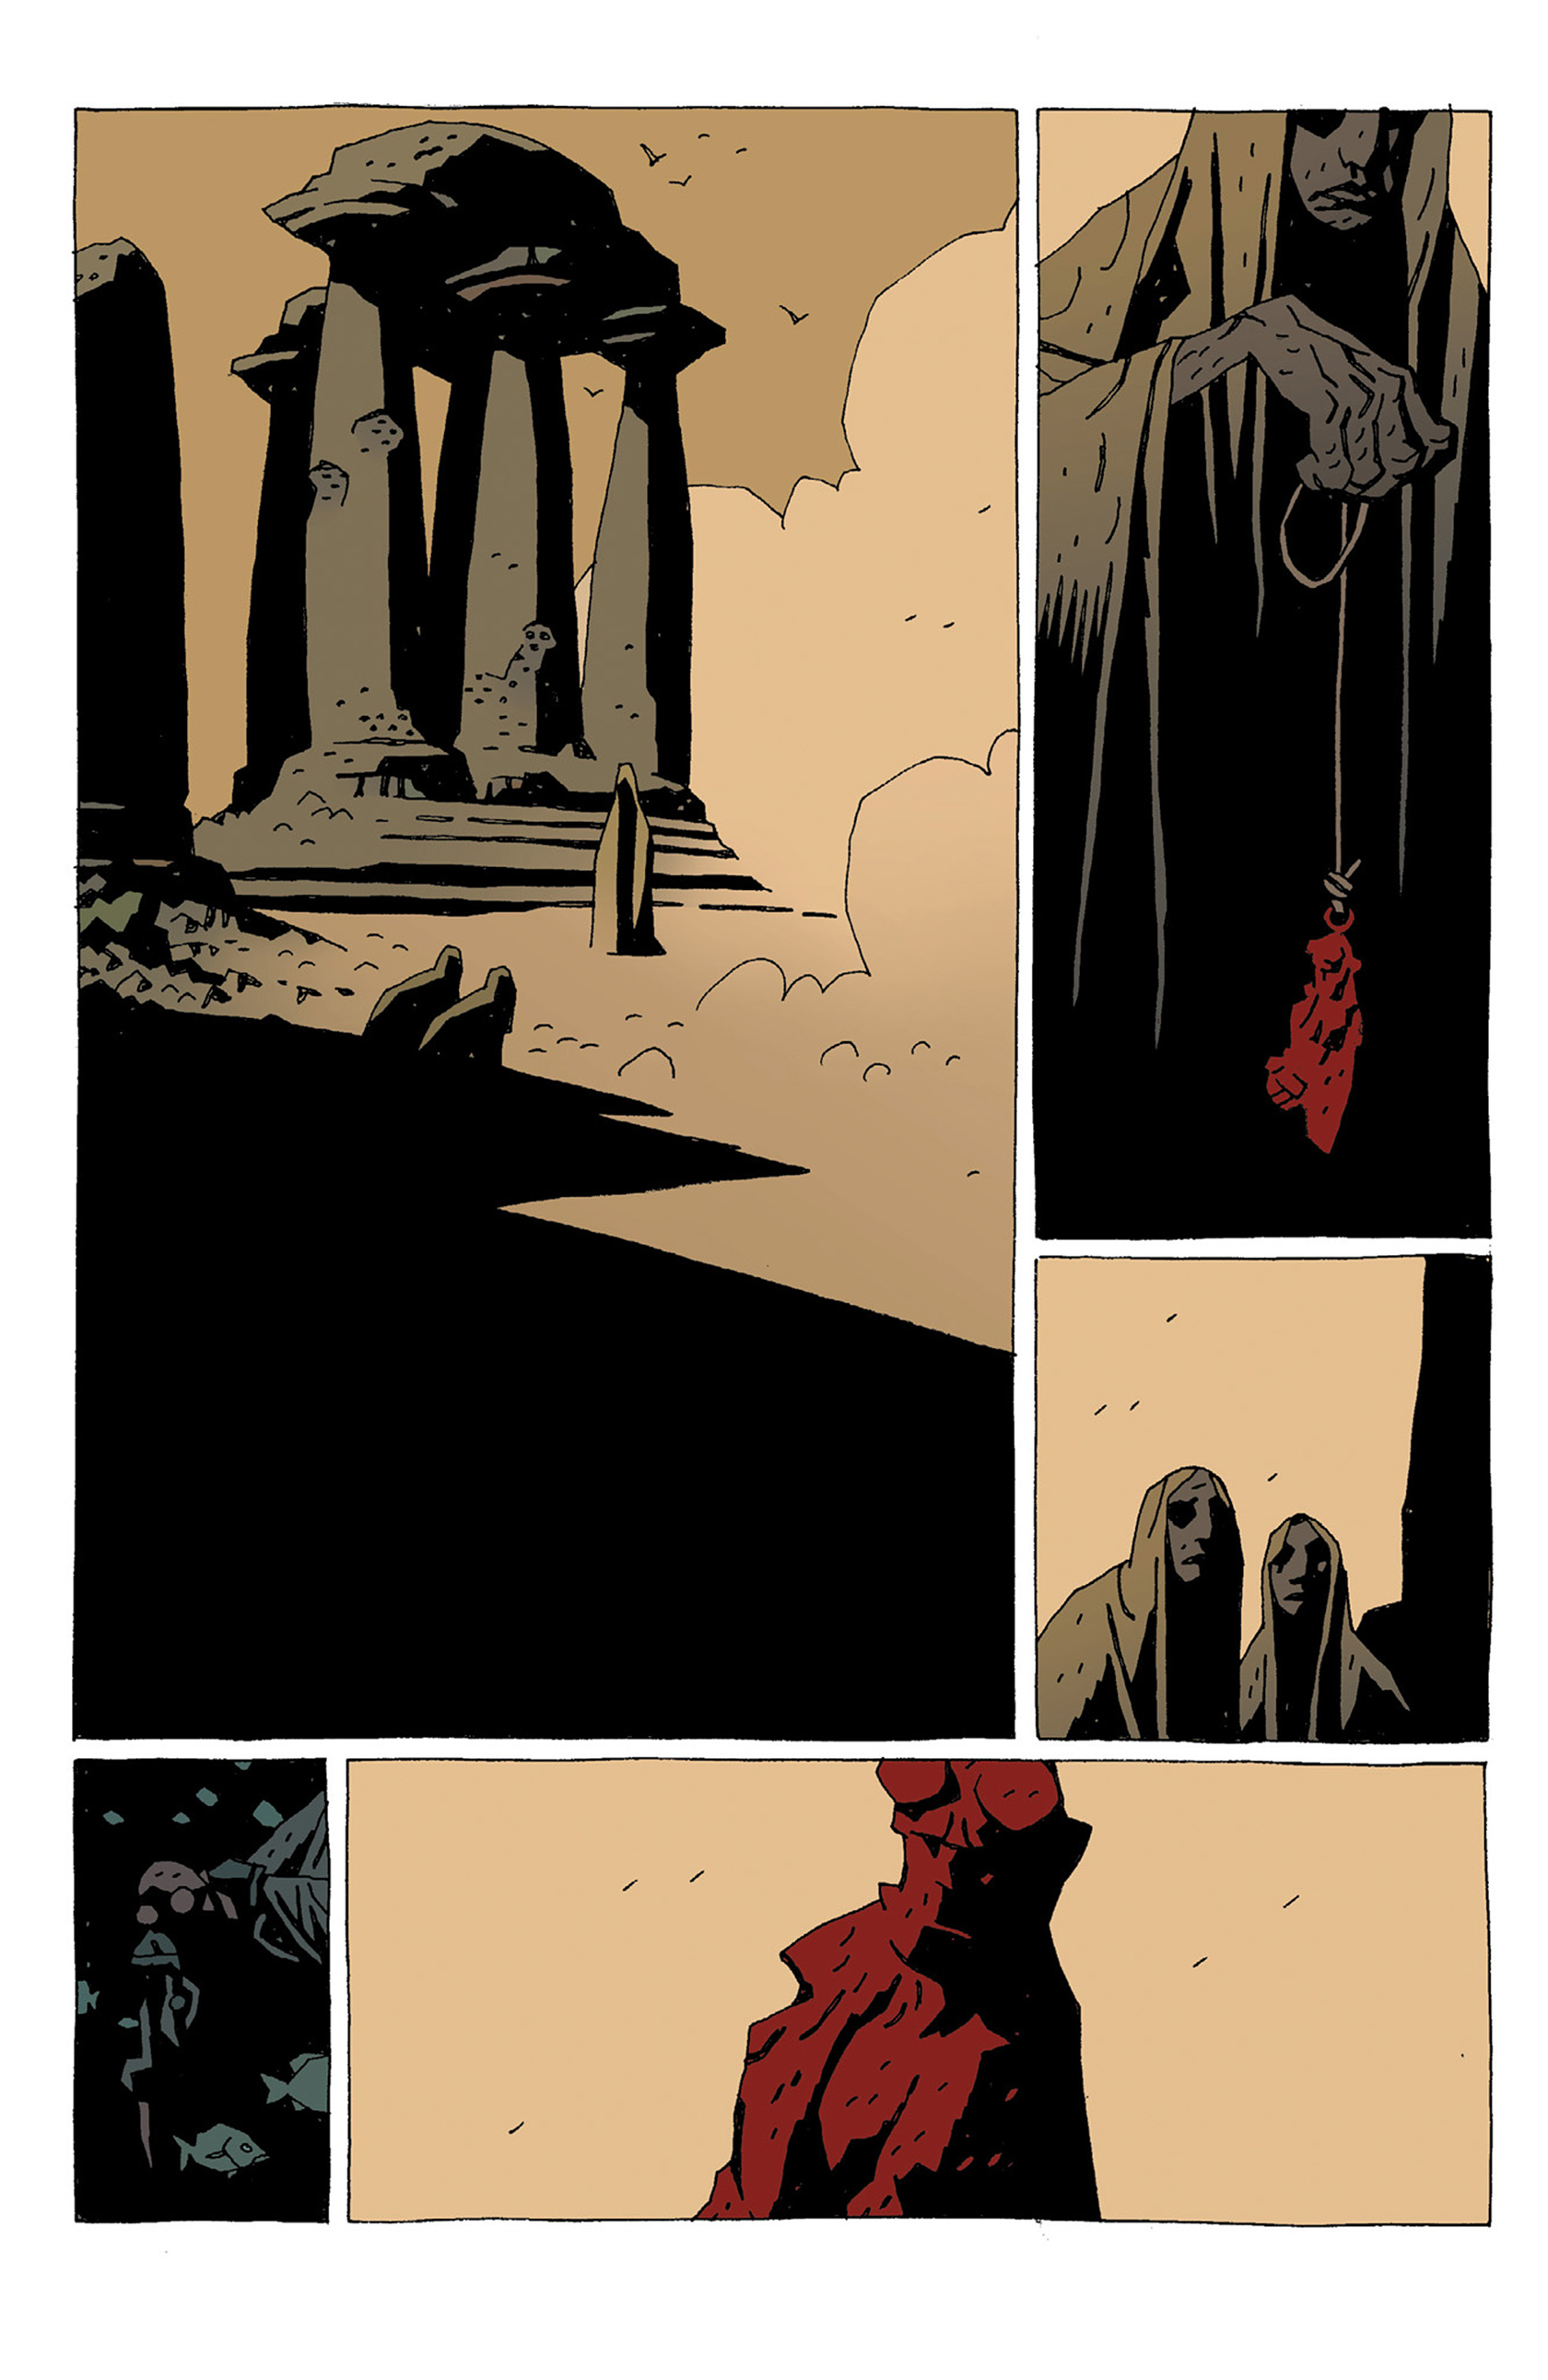 Read online Hellboy: Strange Places comic -  Issue # TPB - 134